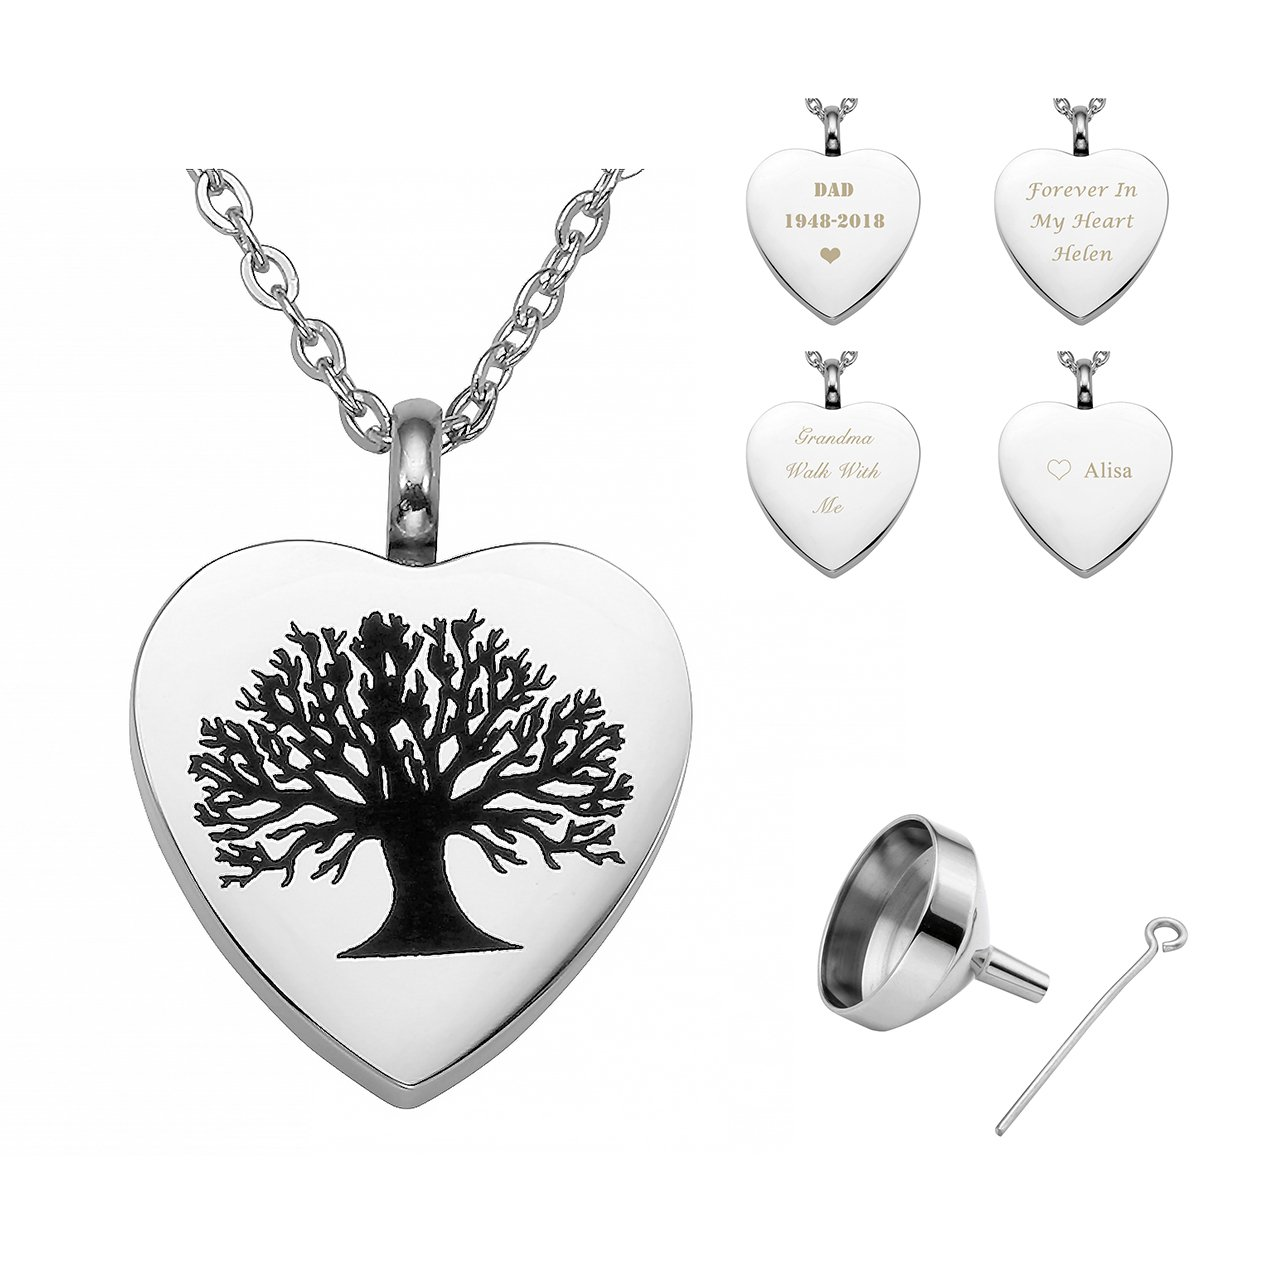 PiercingJ Personalized Custom Stainless Steel Urn Memorial Pendant Heart Shape Life Tree Necklace Memorial Ash Keepsake Cremation Jewelry Funnel Fill Kit Adjustable Extender Chain